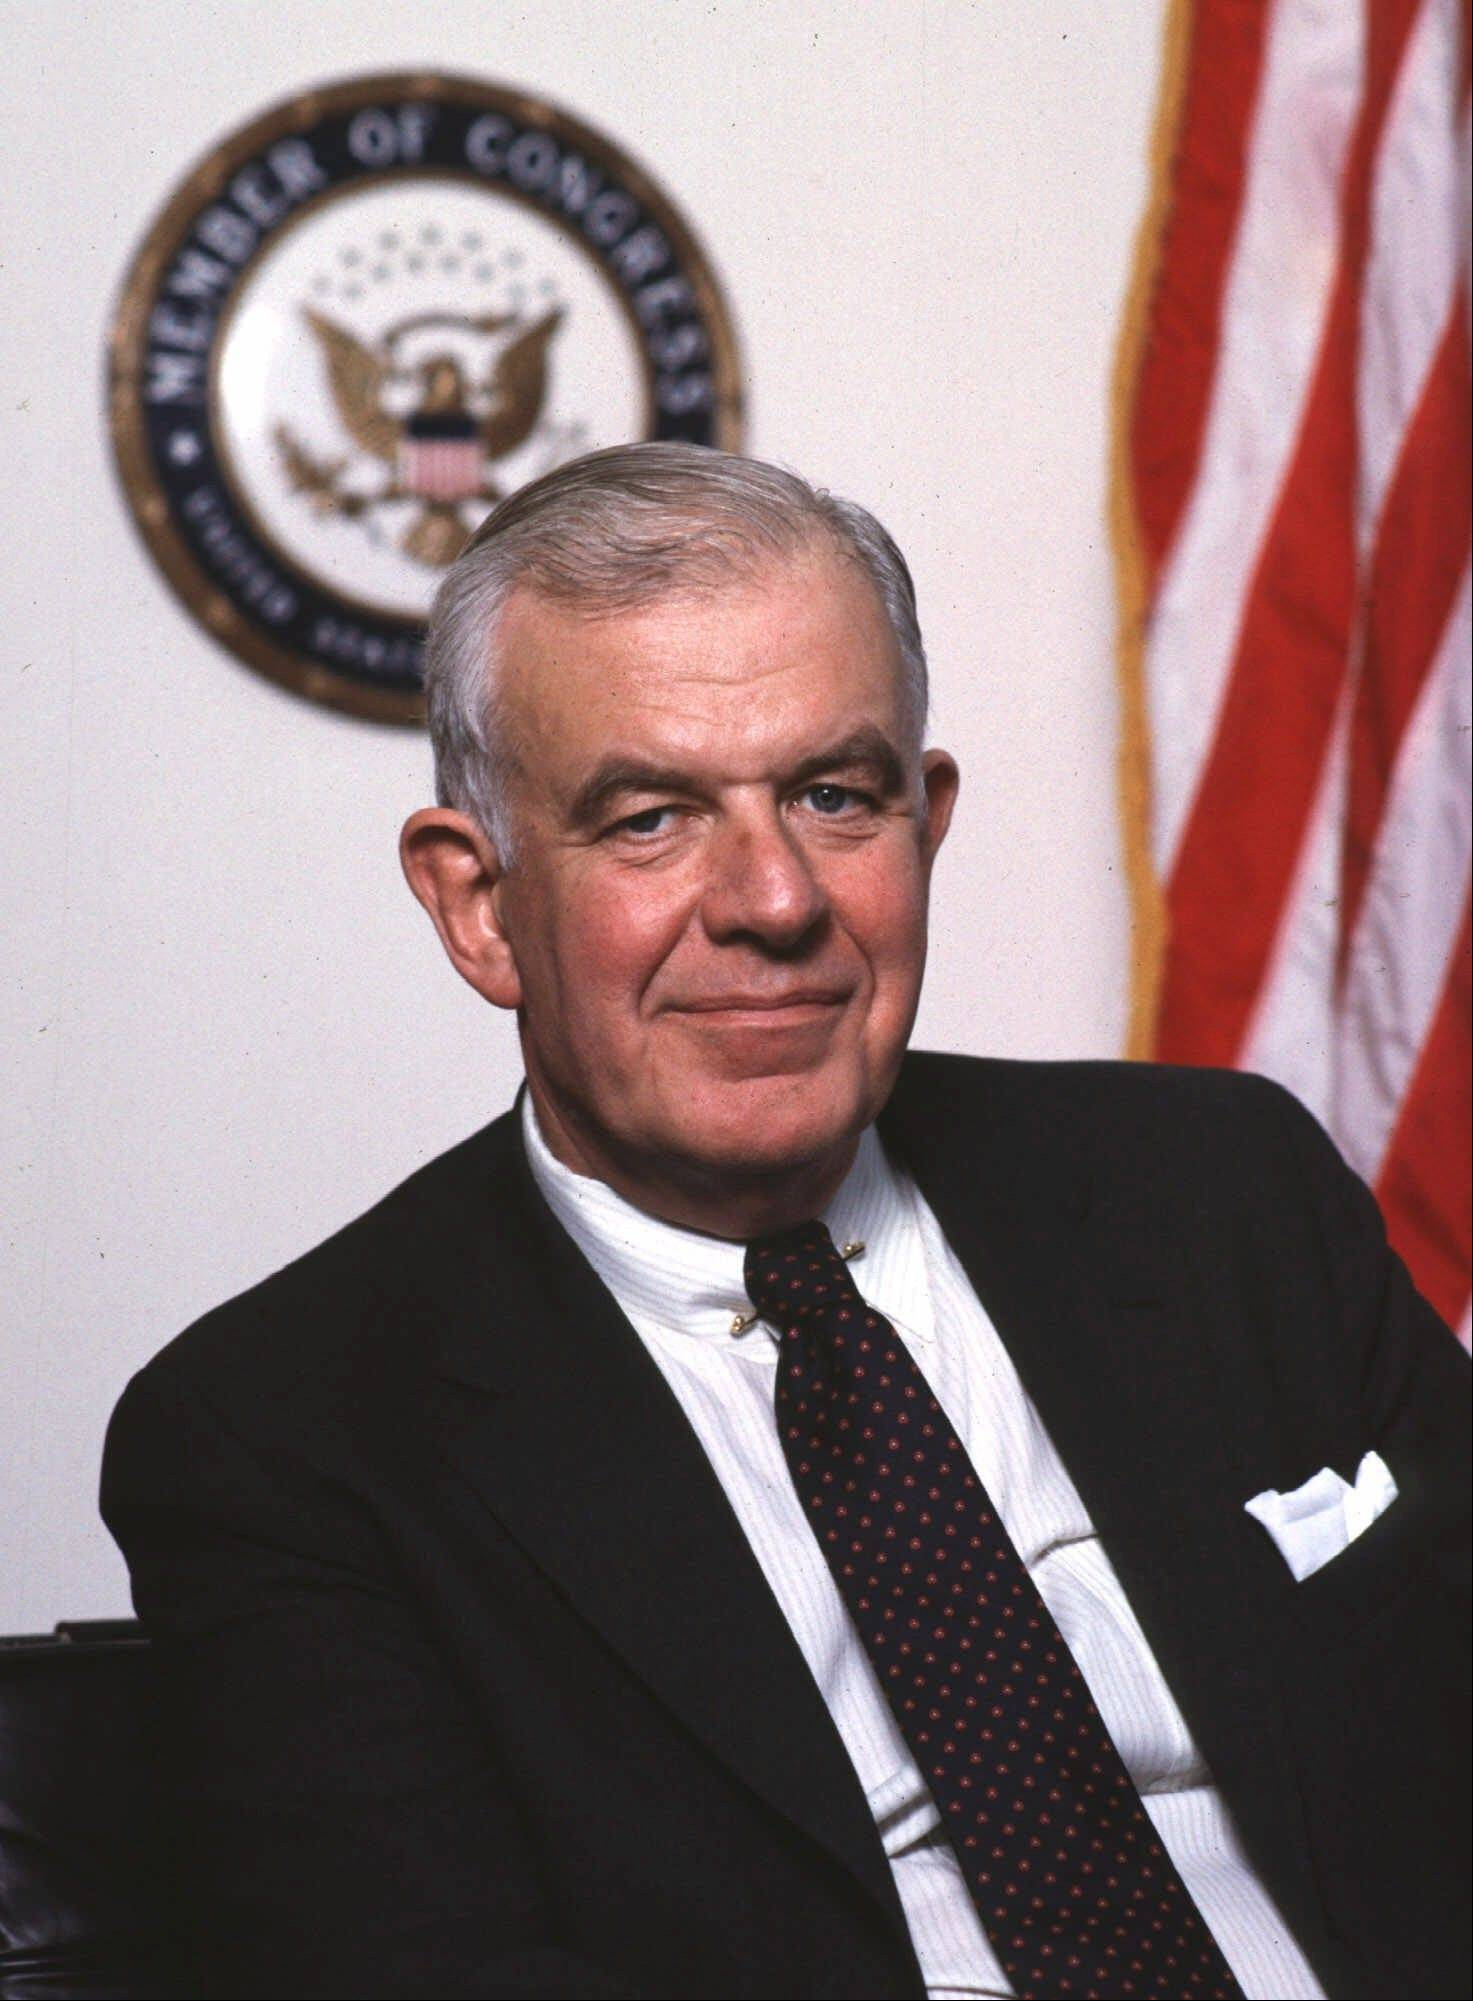 Former Speaker of the U.S. of Representatives Tom Foley in 1989.